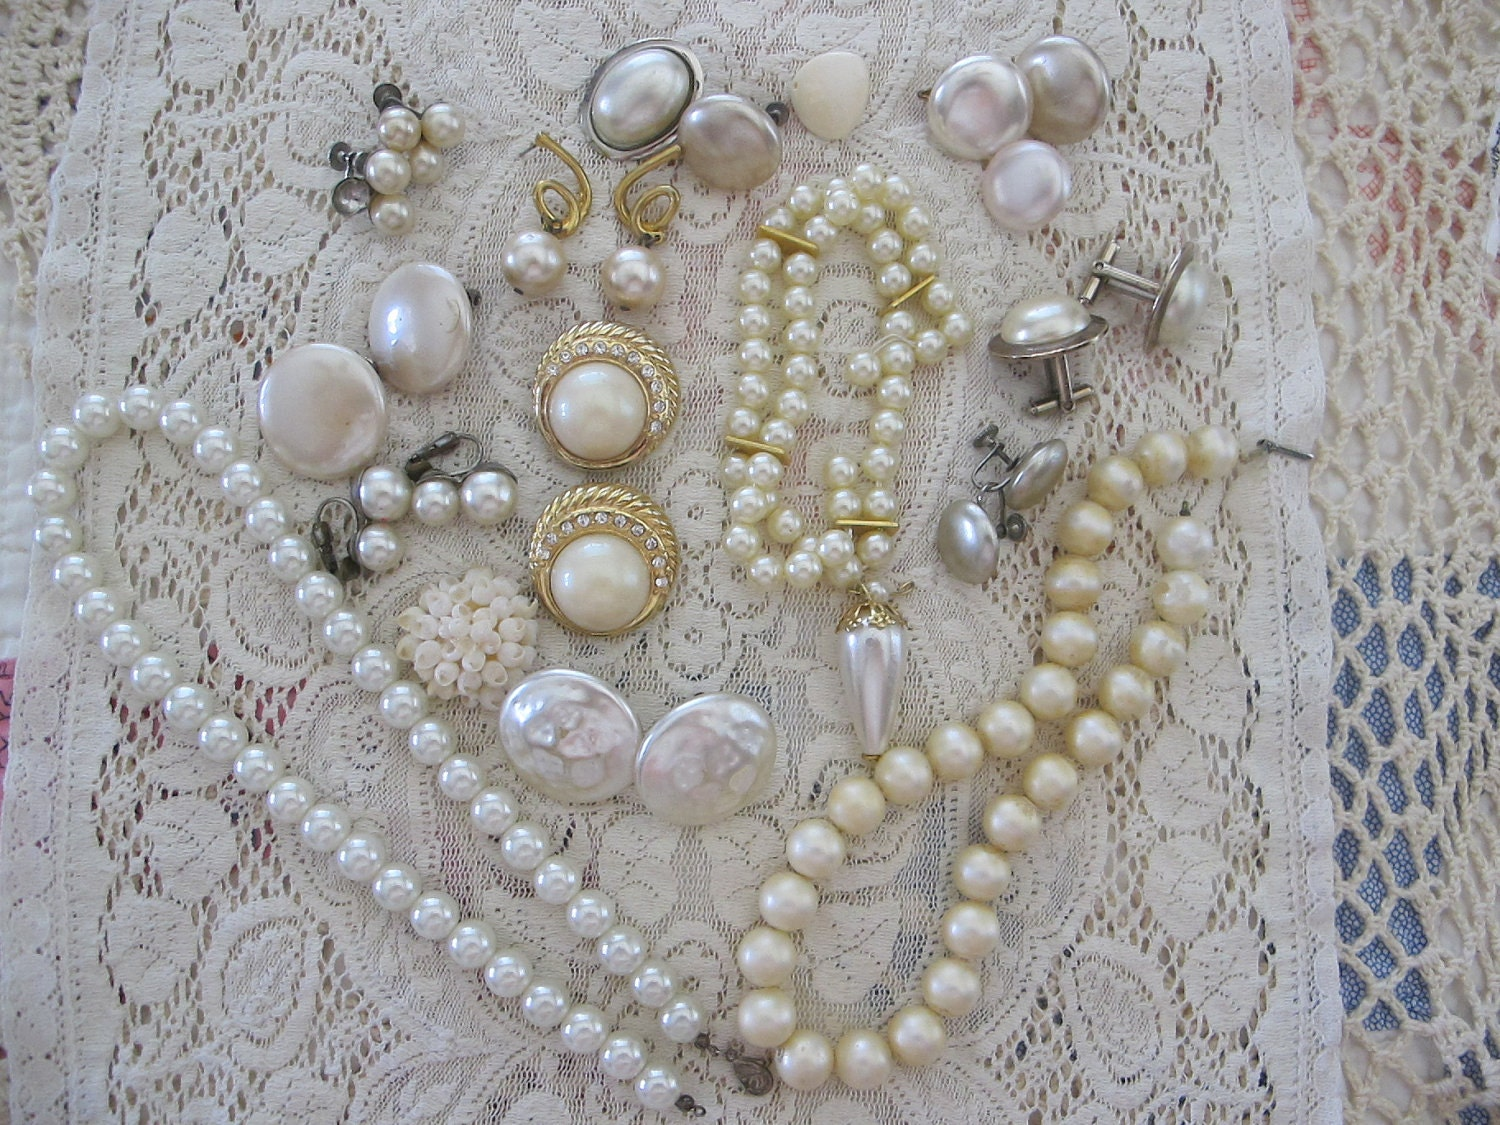 27 Pcs Vintage Jewelry Lot Destash..Creamy Pearly Bits and Pieces for Crafts..Wedding Assemblage..Mixed Media..